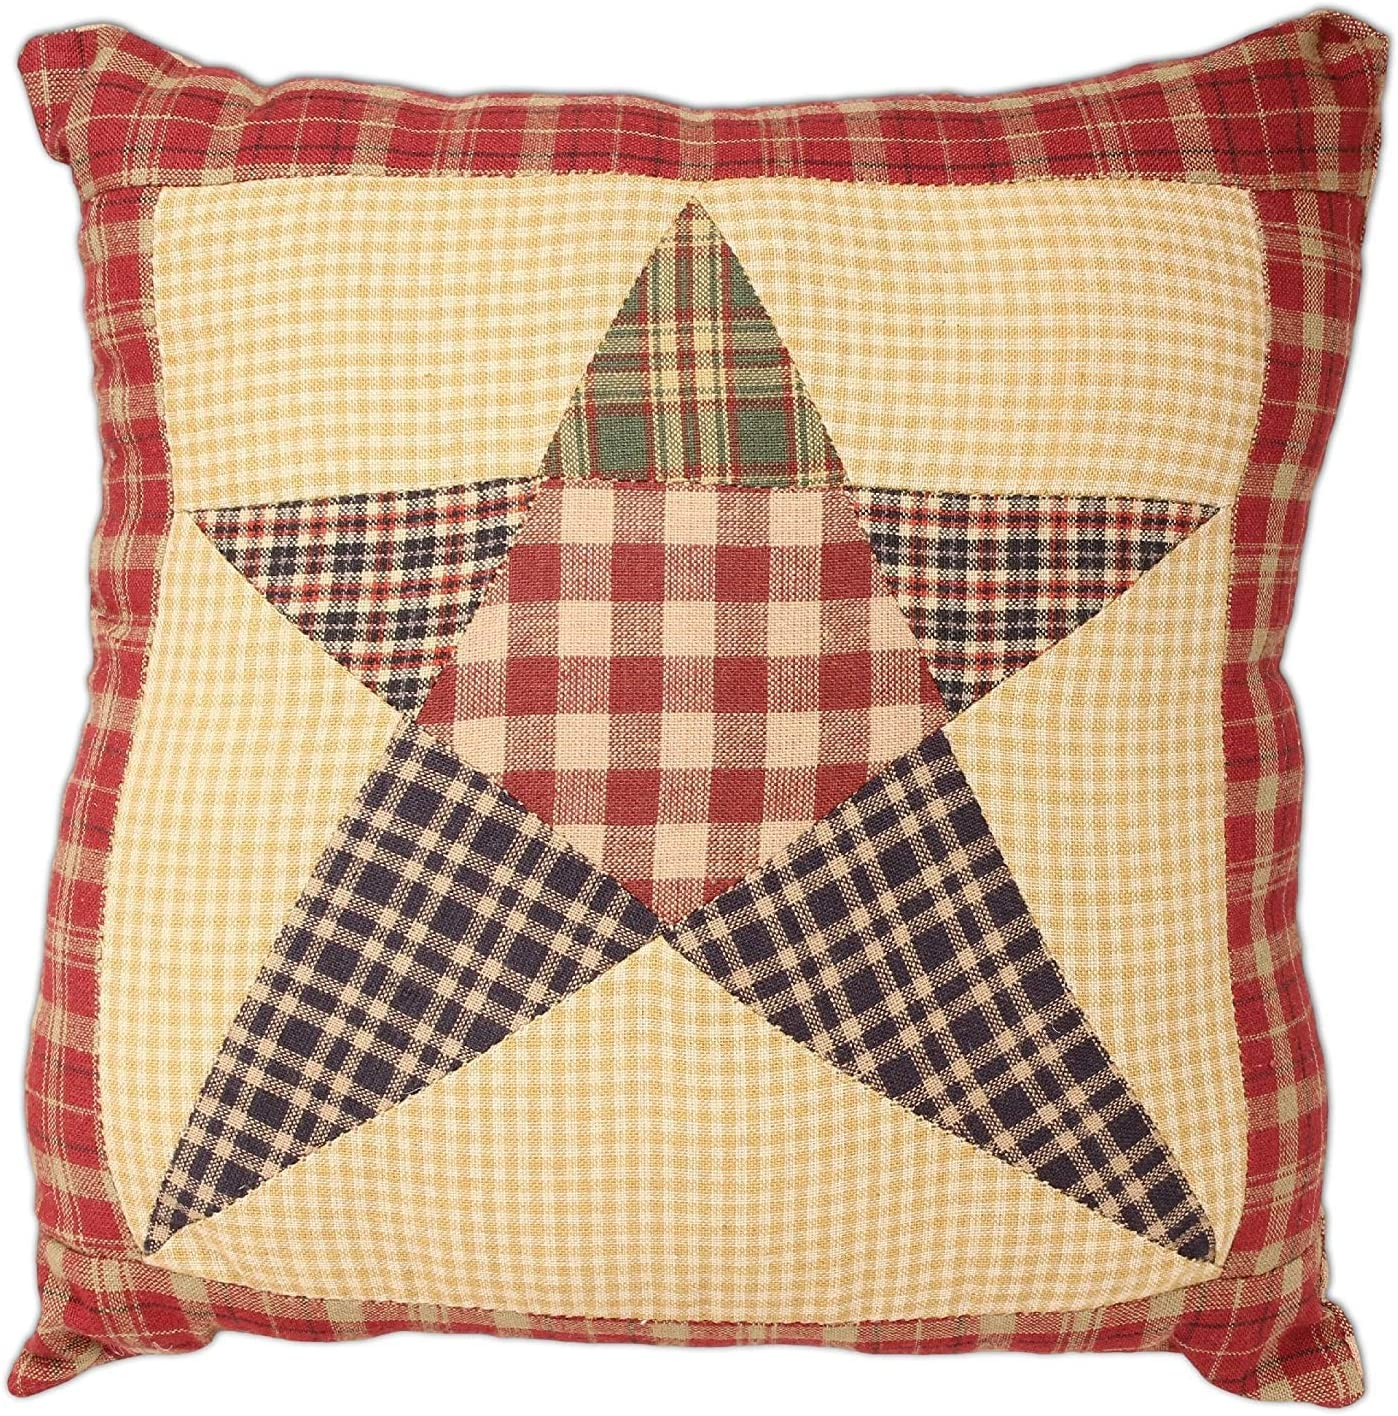 New Farmhouse Red Check BURGUNDY STAR Patchwork Quilt Bedding Pillows YOU CHOOSE